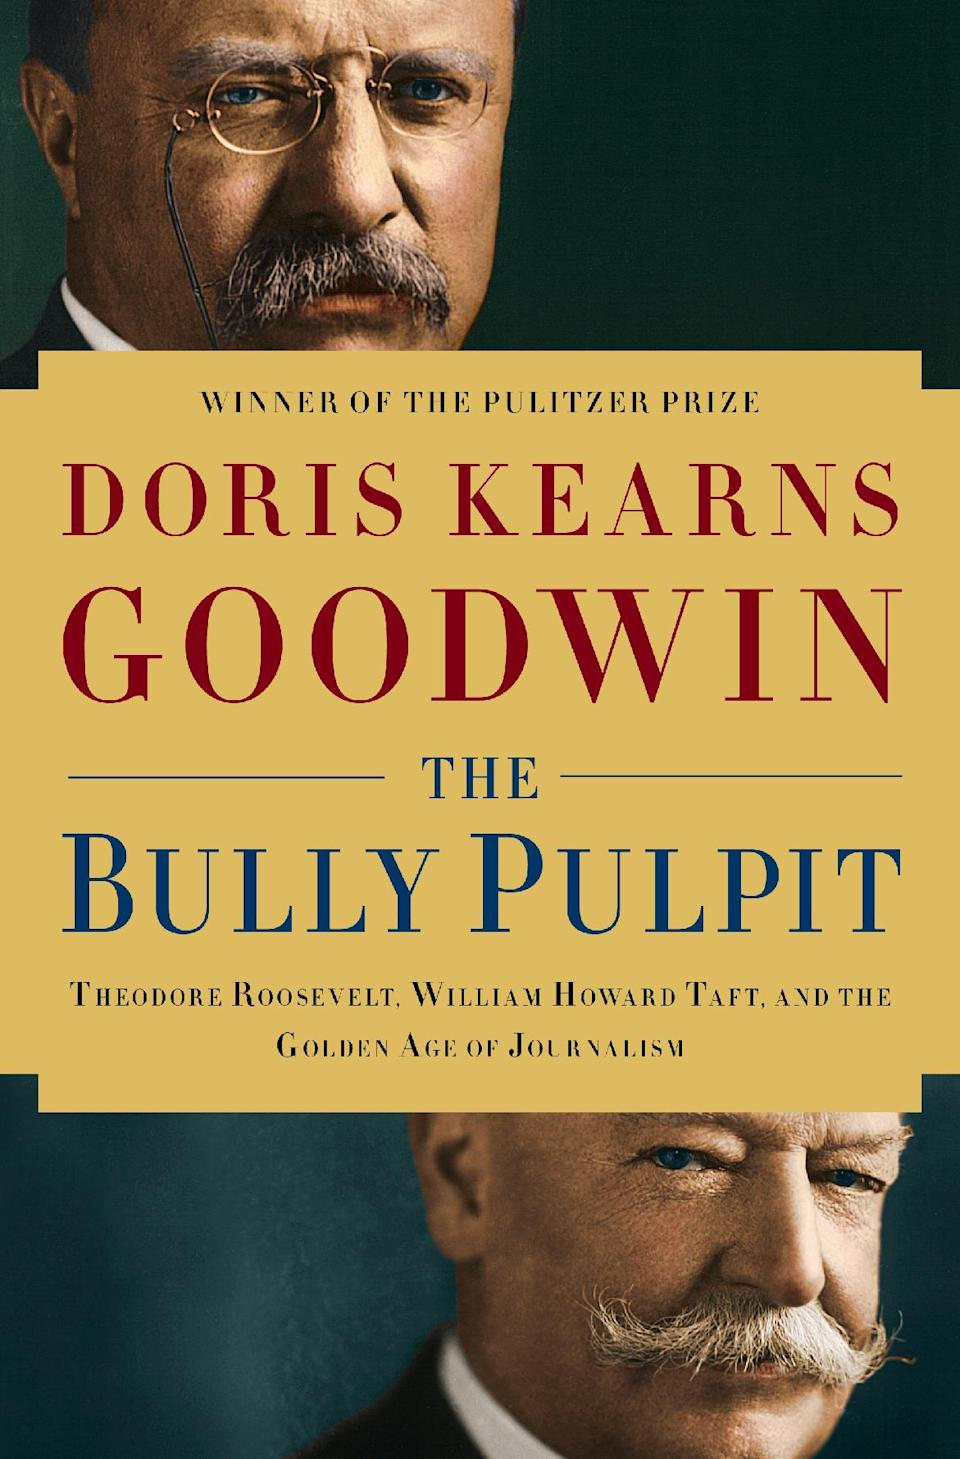 "This book cover image released by Simon & Schuster shows ""The Bully Pulpit: Theodore Roosevelt, William Howard Taft, and the Golden Age of Journalism,"" by Doris Kearns Goodwin. The book will be released on Nov. 5. (AP Photo/Simon & Schuster)"